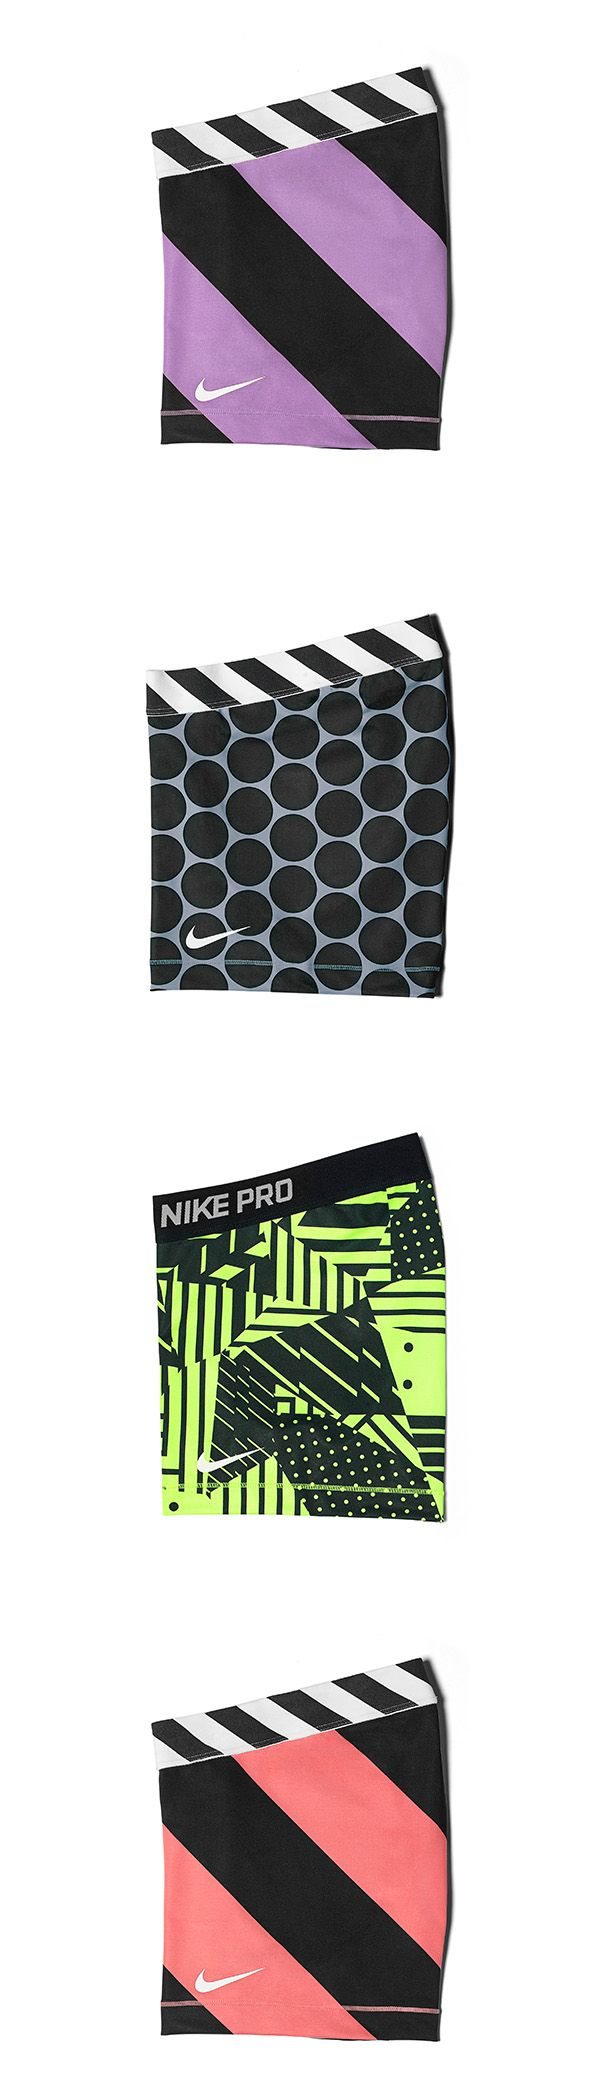 "Mix and match for a bold new summer look. This print to train outside. That pattern for the gym. Make it your own with the Nike Pro 3"" shorts."